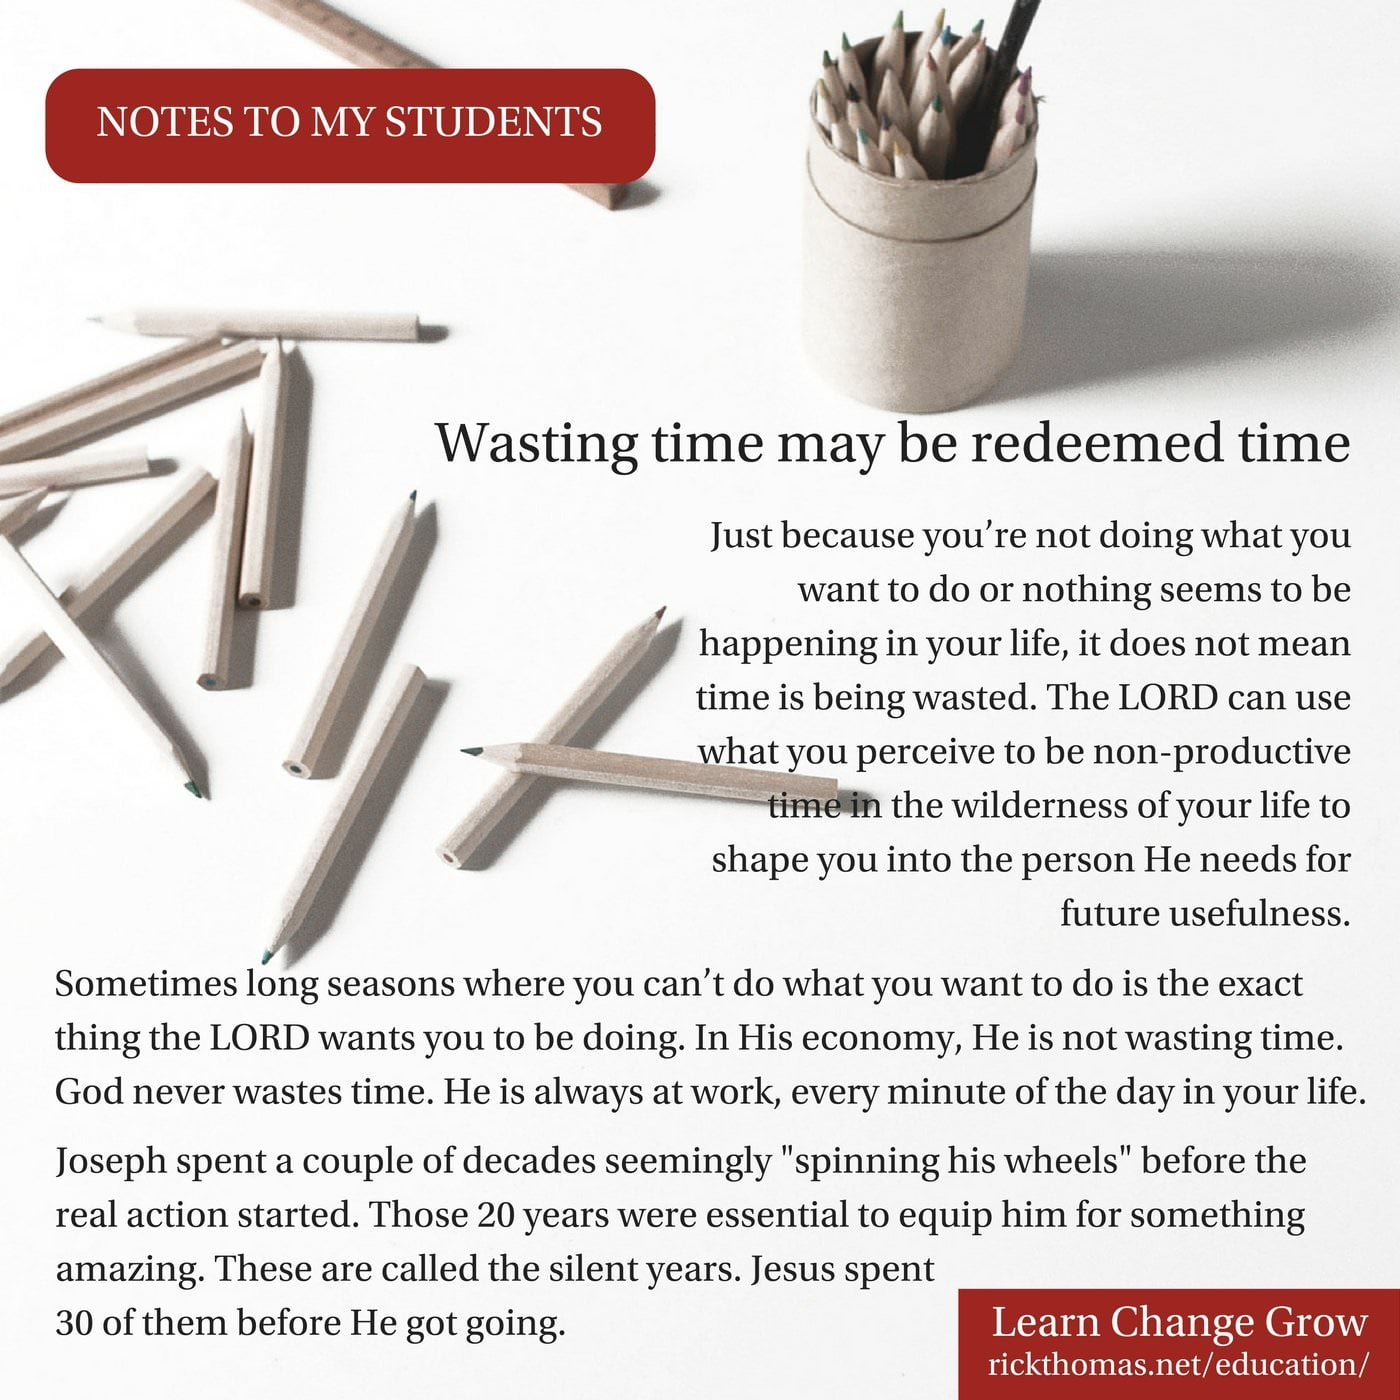 NOTE_ Wasting time may be redeemed time